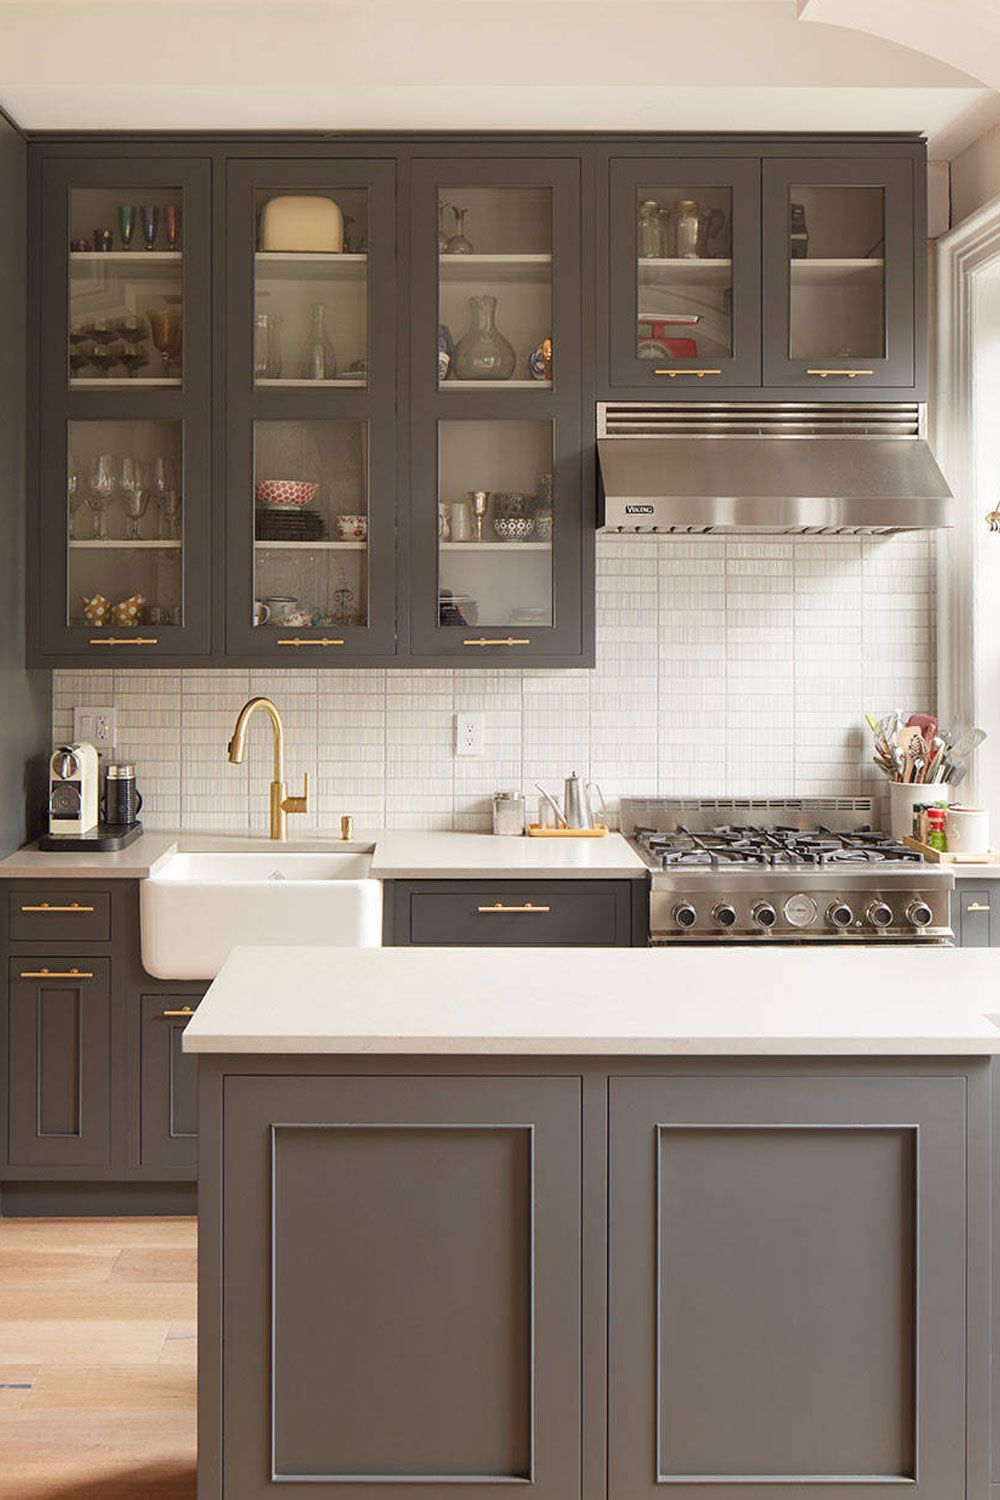 Cabinet Paint Color Trends And How To Choose Timeless Colors Painted Kitchen Cabinets Colors Cabinet Paint Colors Timeless Kitchen